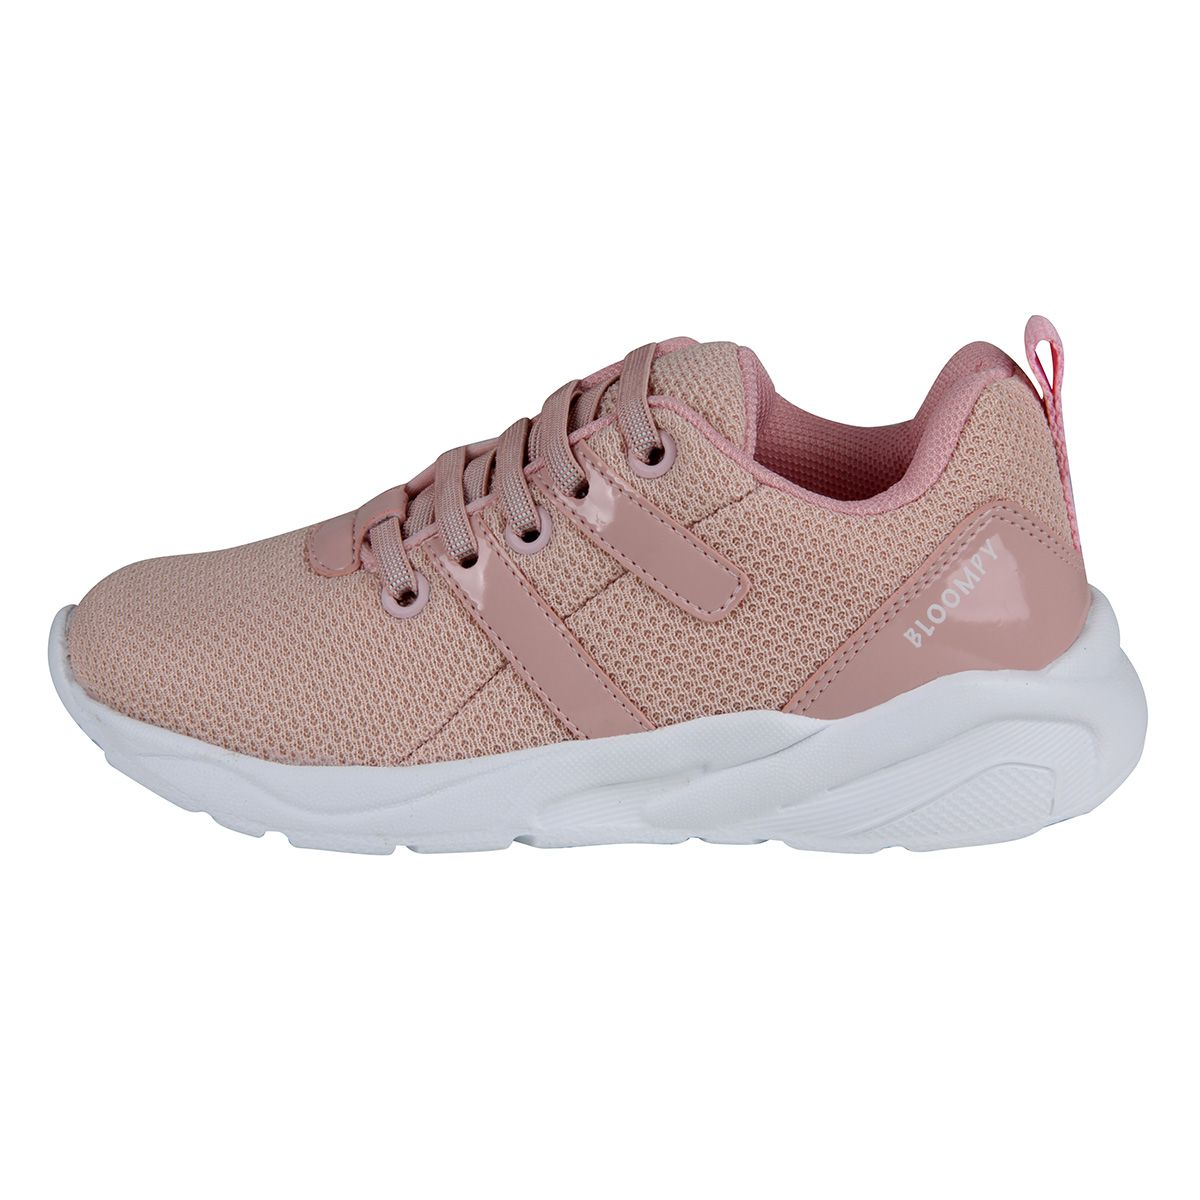 Tenis Bloompy Feminino Fly Girls Rosa